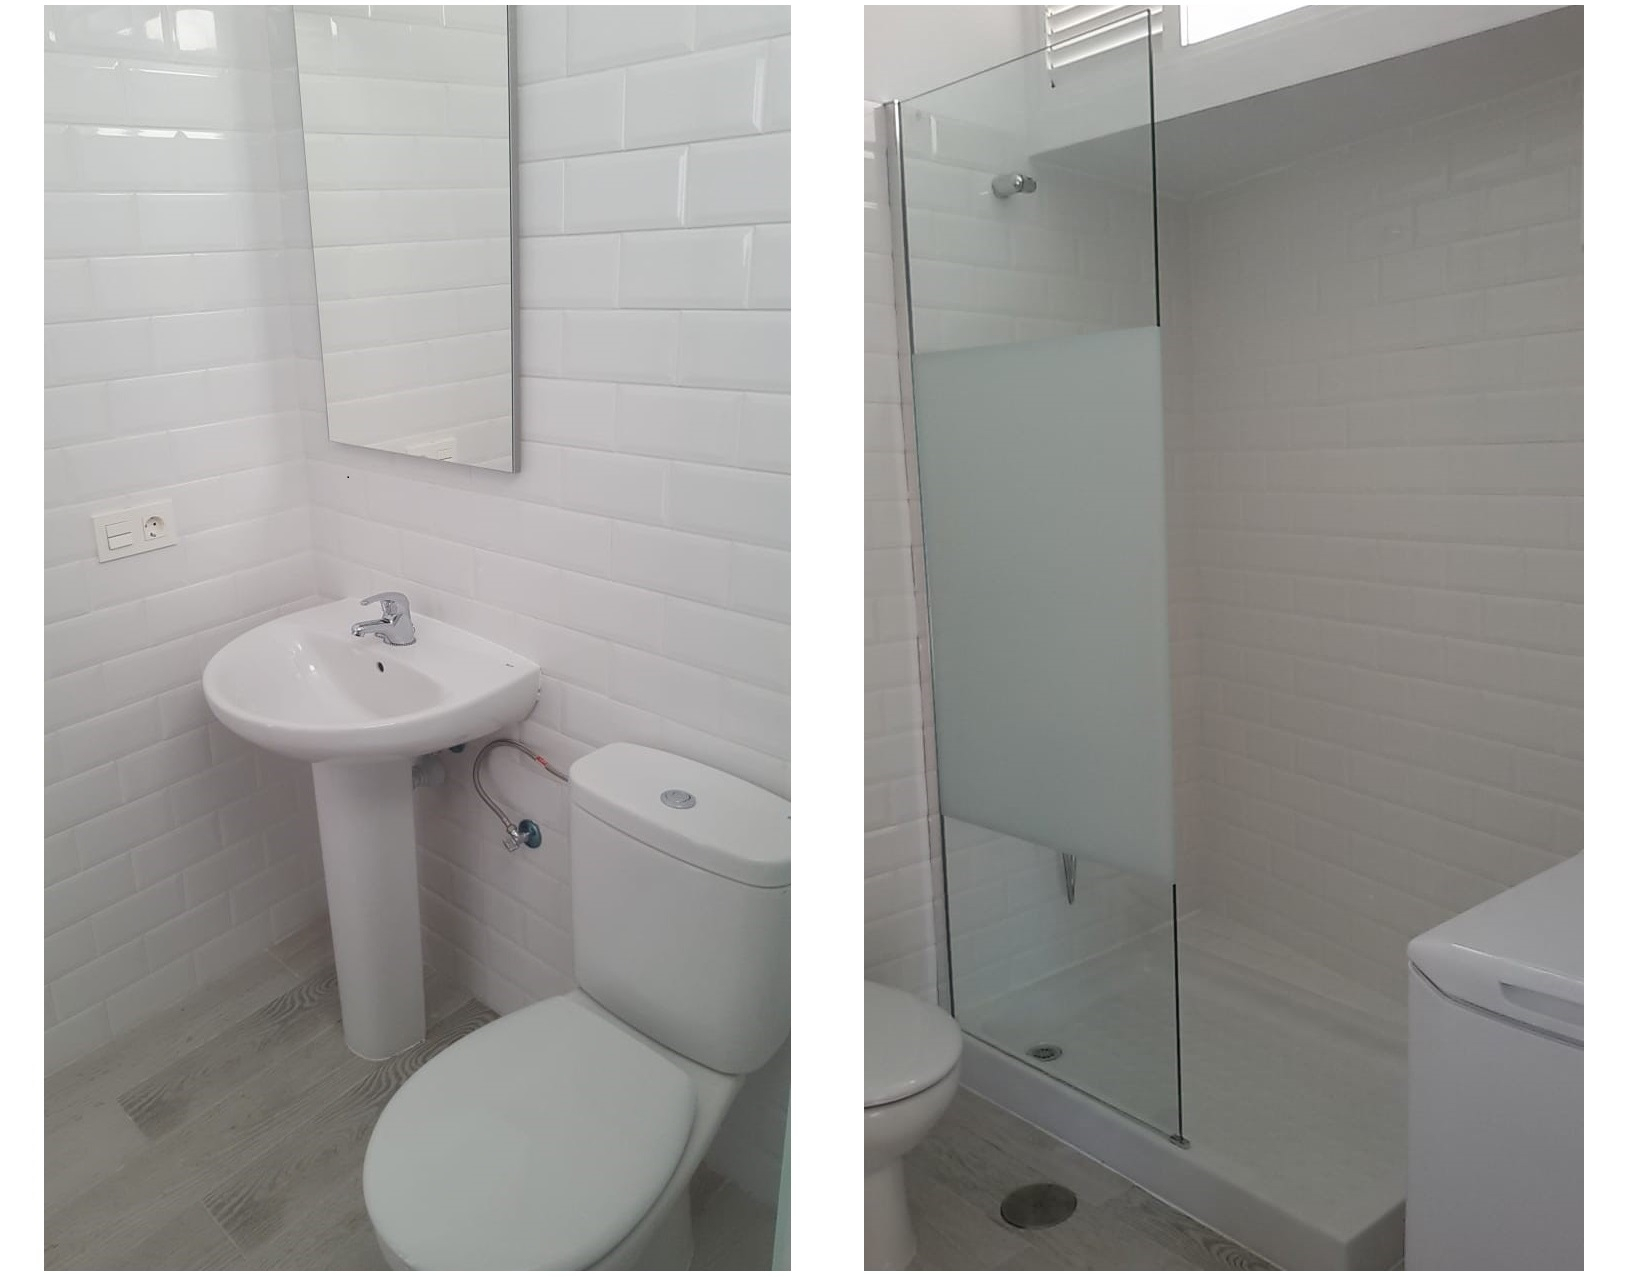 Properties for Sale in Tenerife, Canary Islands, Spain | TENERPROPERTY Real Estate. 1 Bedroom apartment - Colina Blanca. Image-25171